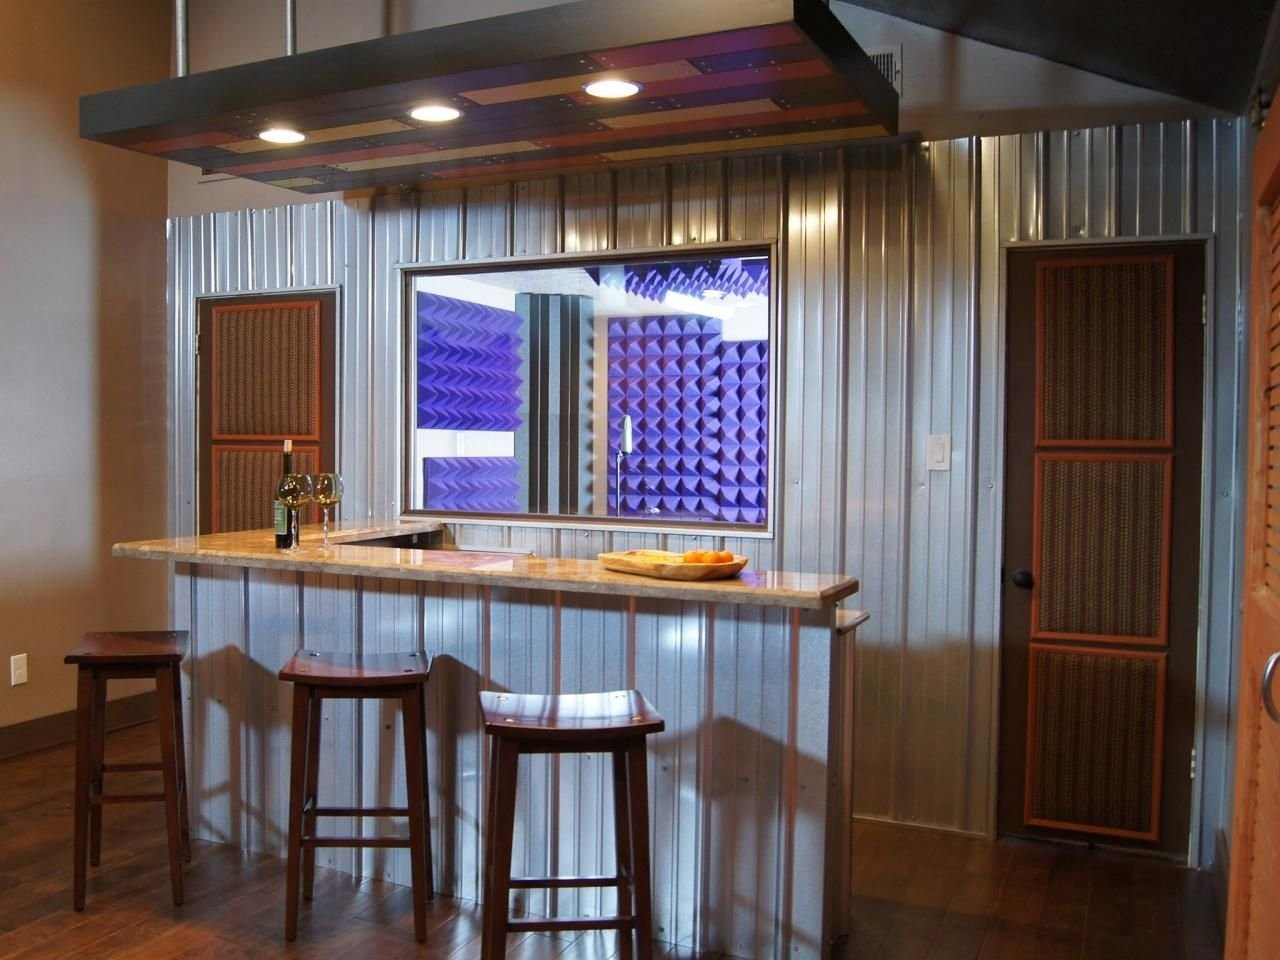 10 Elegant Basement Bar Ideas For Small Spaces spice up your basement bar 17 ideas for a beautiful bar space 2020